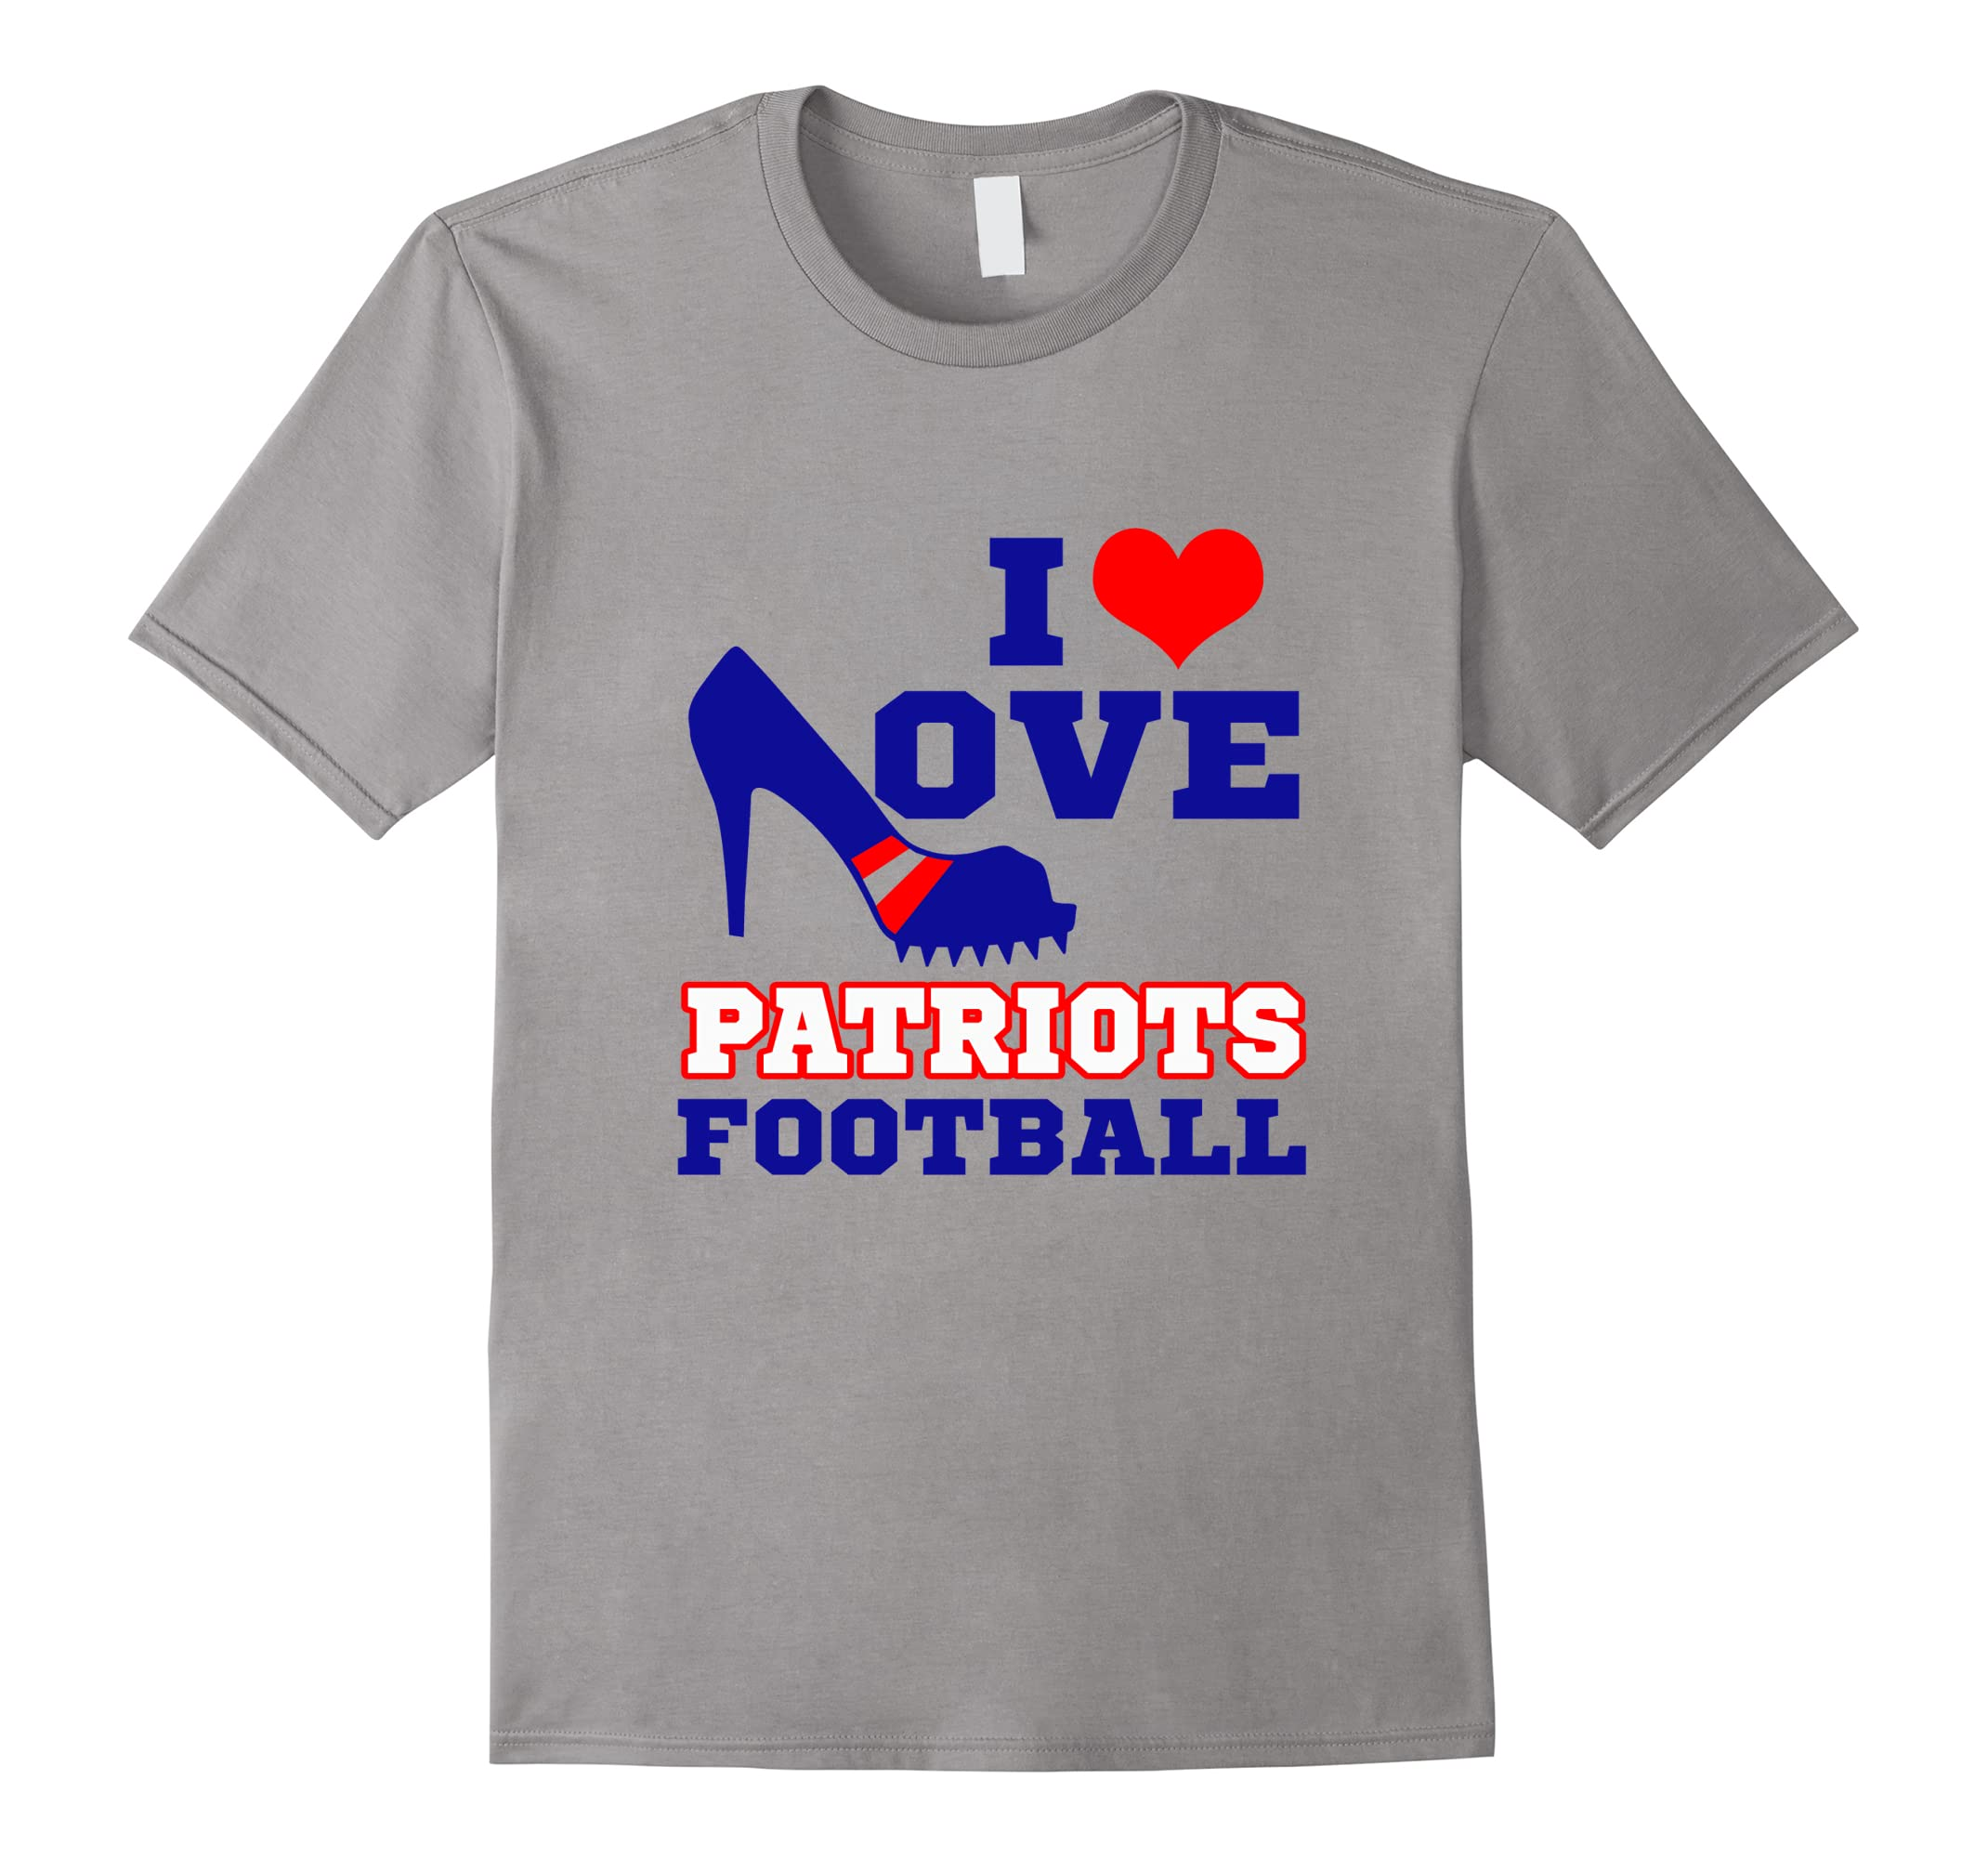 Above Anything Patriots Fans. I Love Patriots Football-ah my shirt one gift